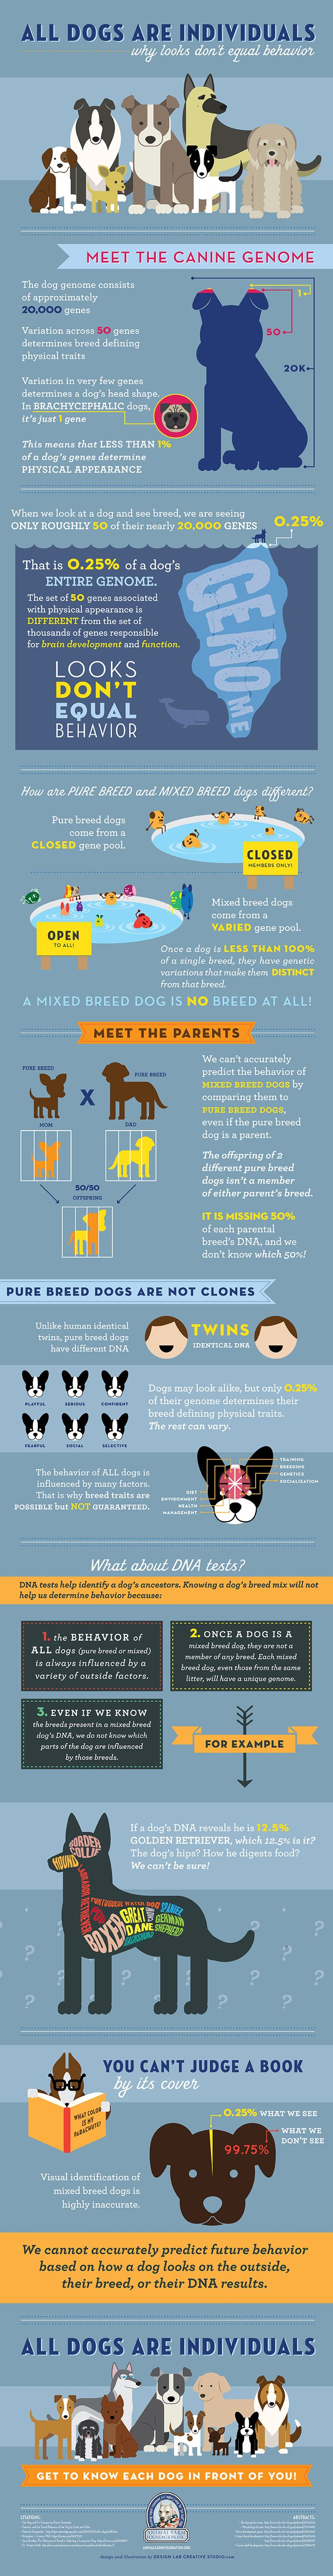 Thanks Animal Farm Foundation for this great infographic! Despite how a dog may look on the outside or what their breed or breed mix may be, research reveals that dogs are complex animals influenced by many factors. Looks alone do not dictate behavior. Every dog must be judged and evaluated for their actual behavior, rather than on assumptions, generalizations, and stereotypes based on breed or looks.